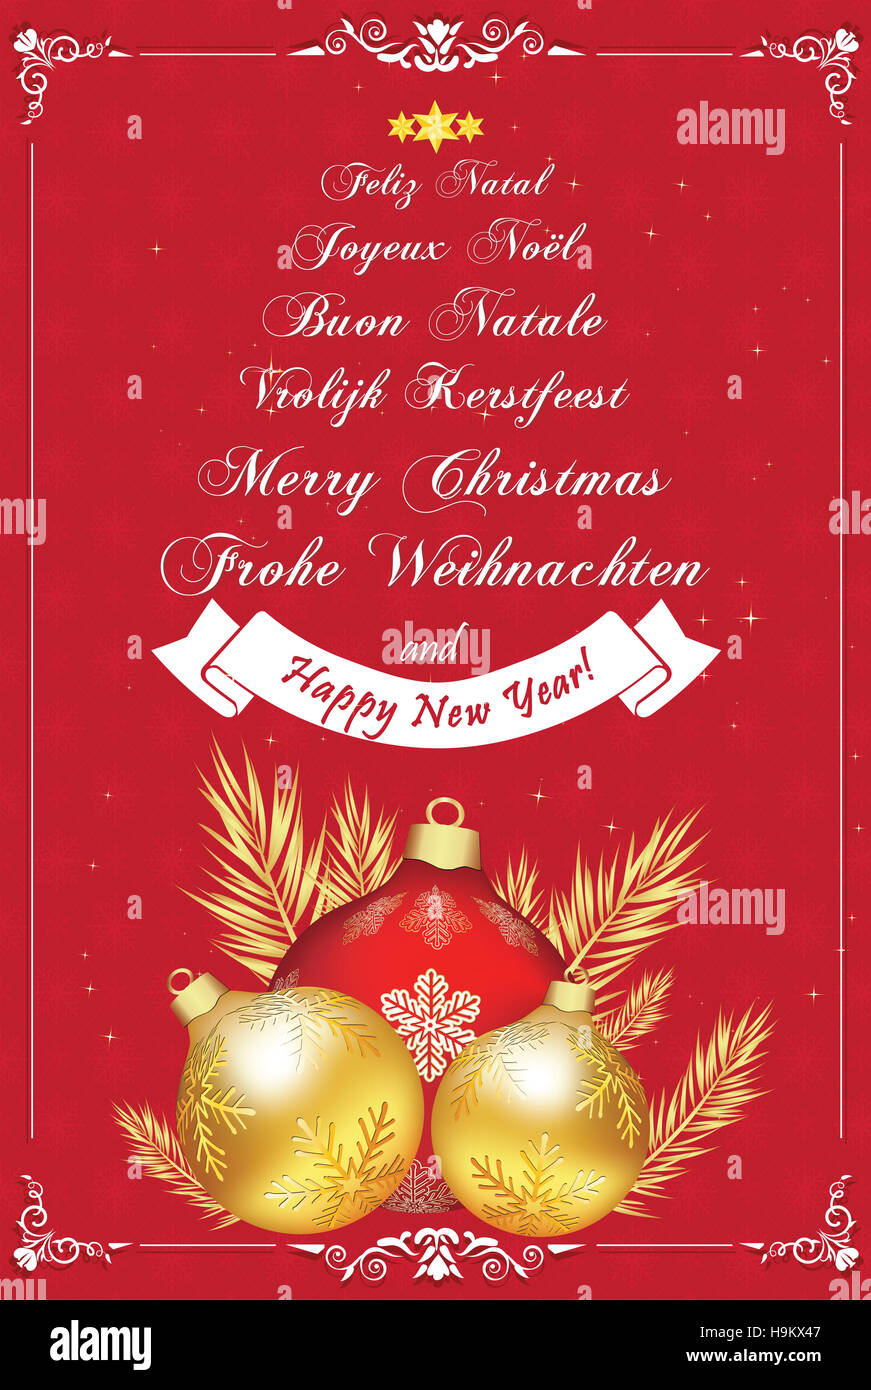 Dutch christmas card christmas baubles stock photos dutch christmas wishes in many languageseeting card with snowflakes pattern and text in many languages m4hsunfo